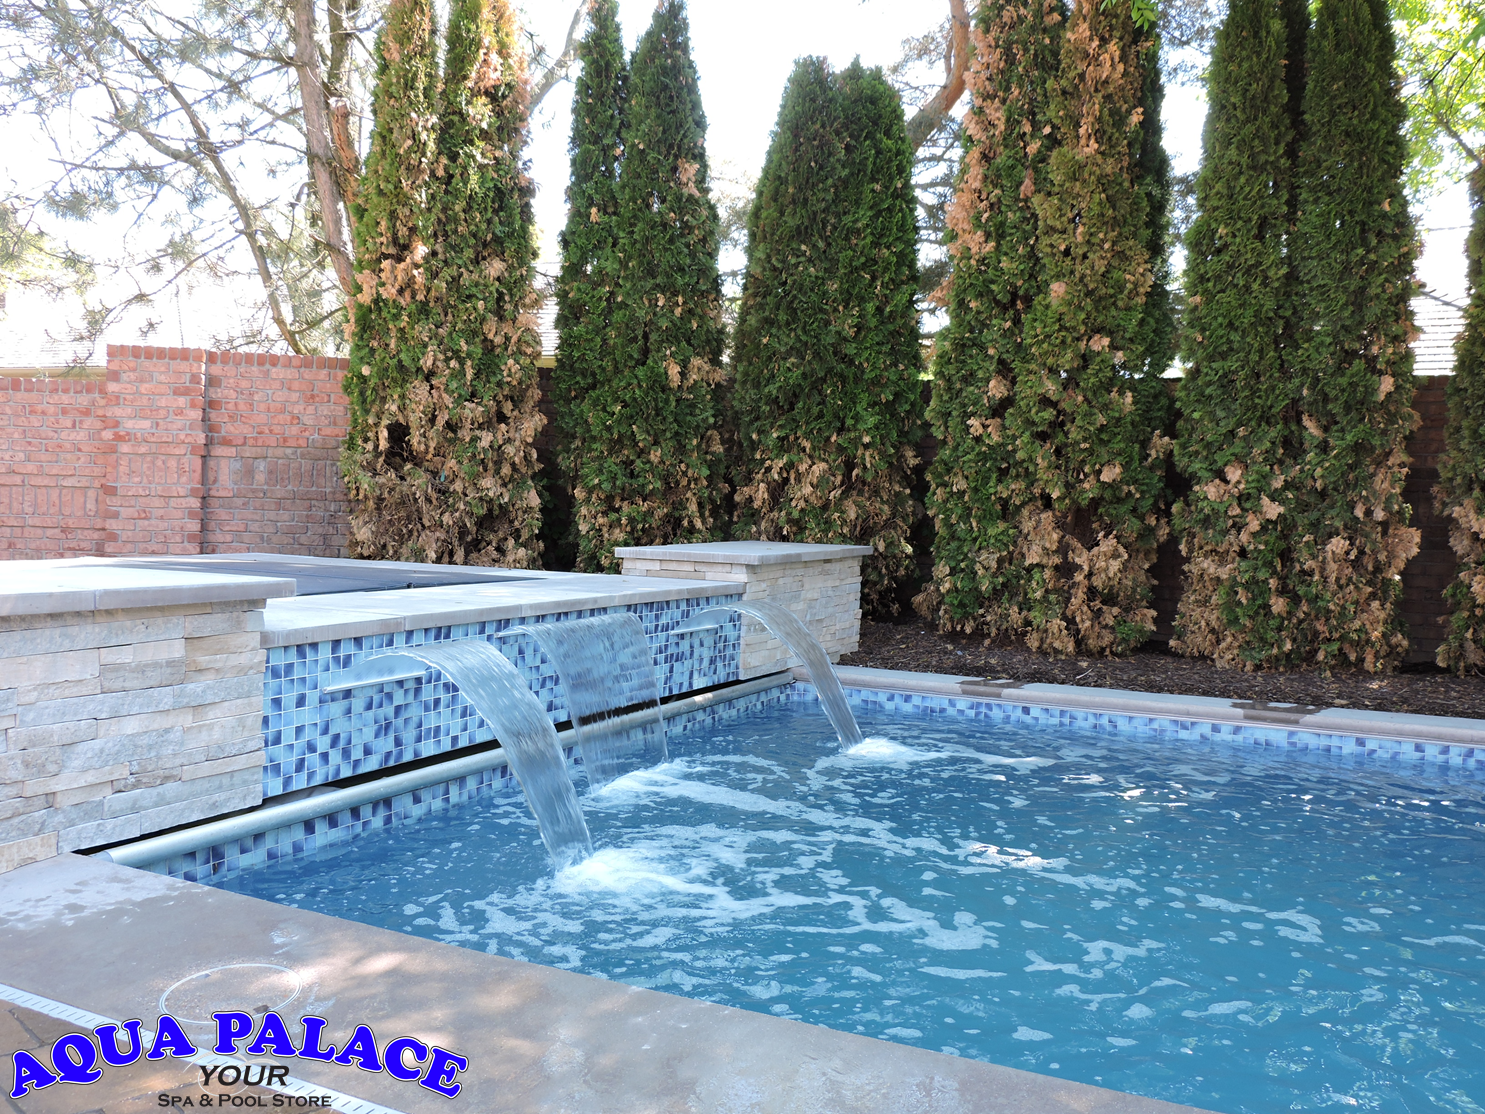 Fiberglass Inground Pool With Custom Water Features Tile And Auto Cover Enjoy The Hot Tub While Overlooki Custom Water Feature Pool Inground Fiberglass Pools